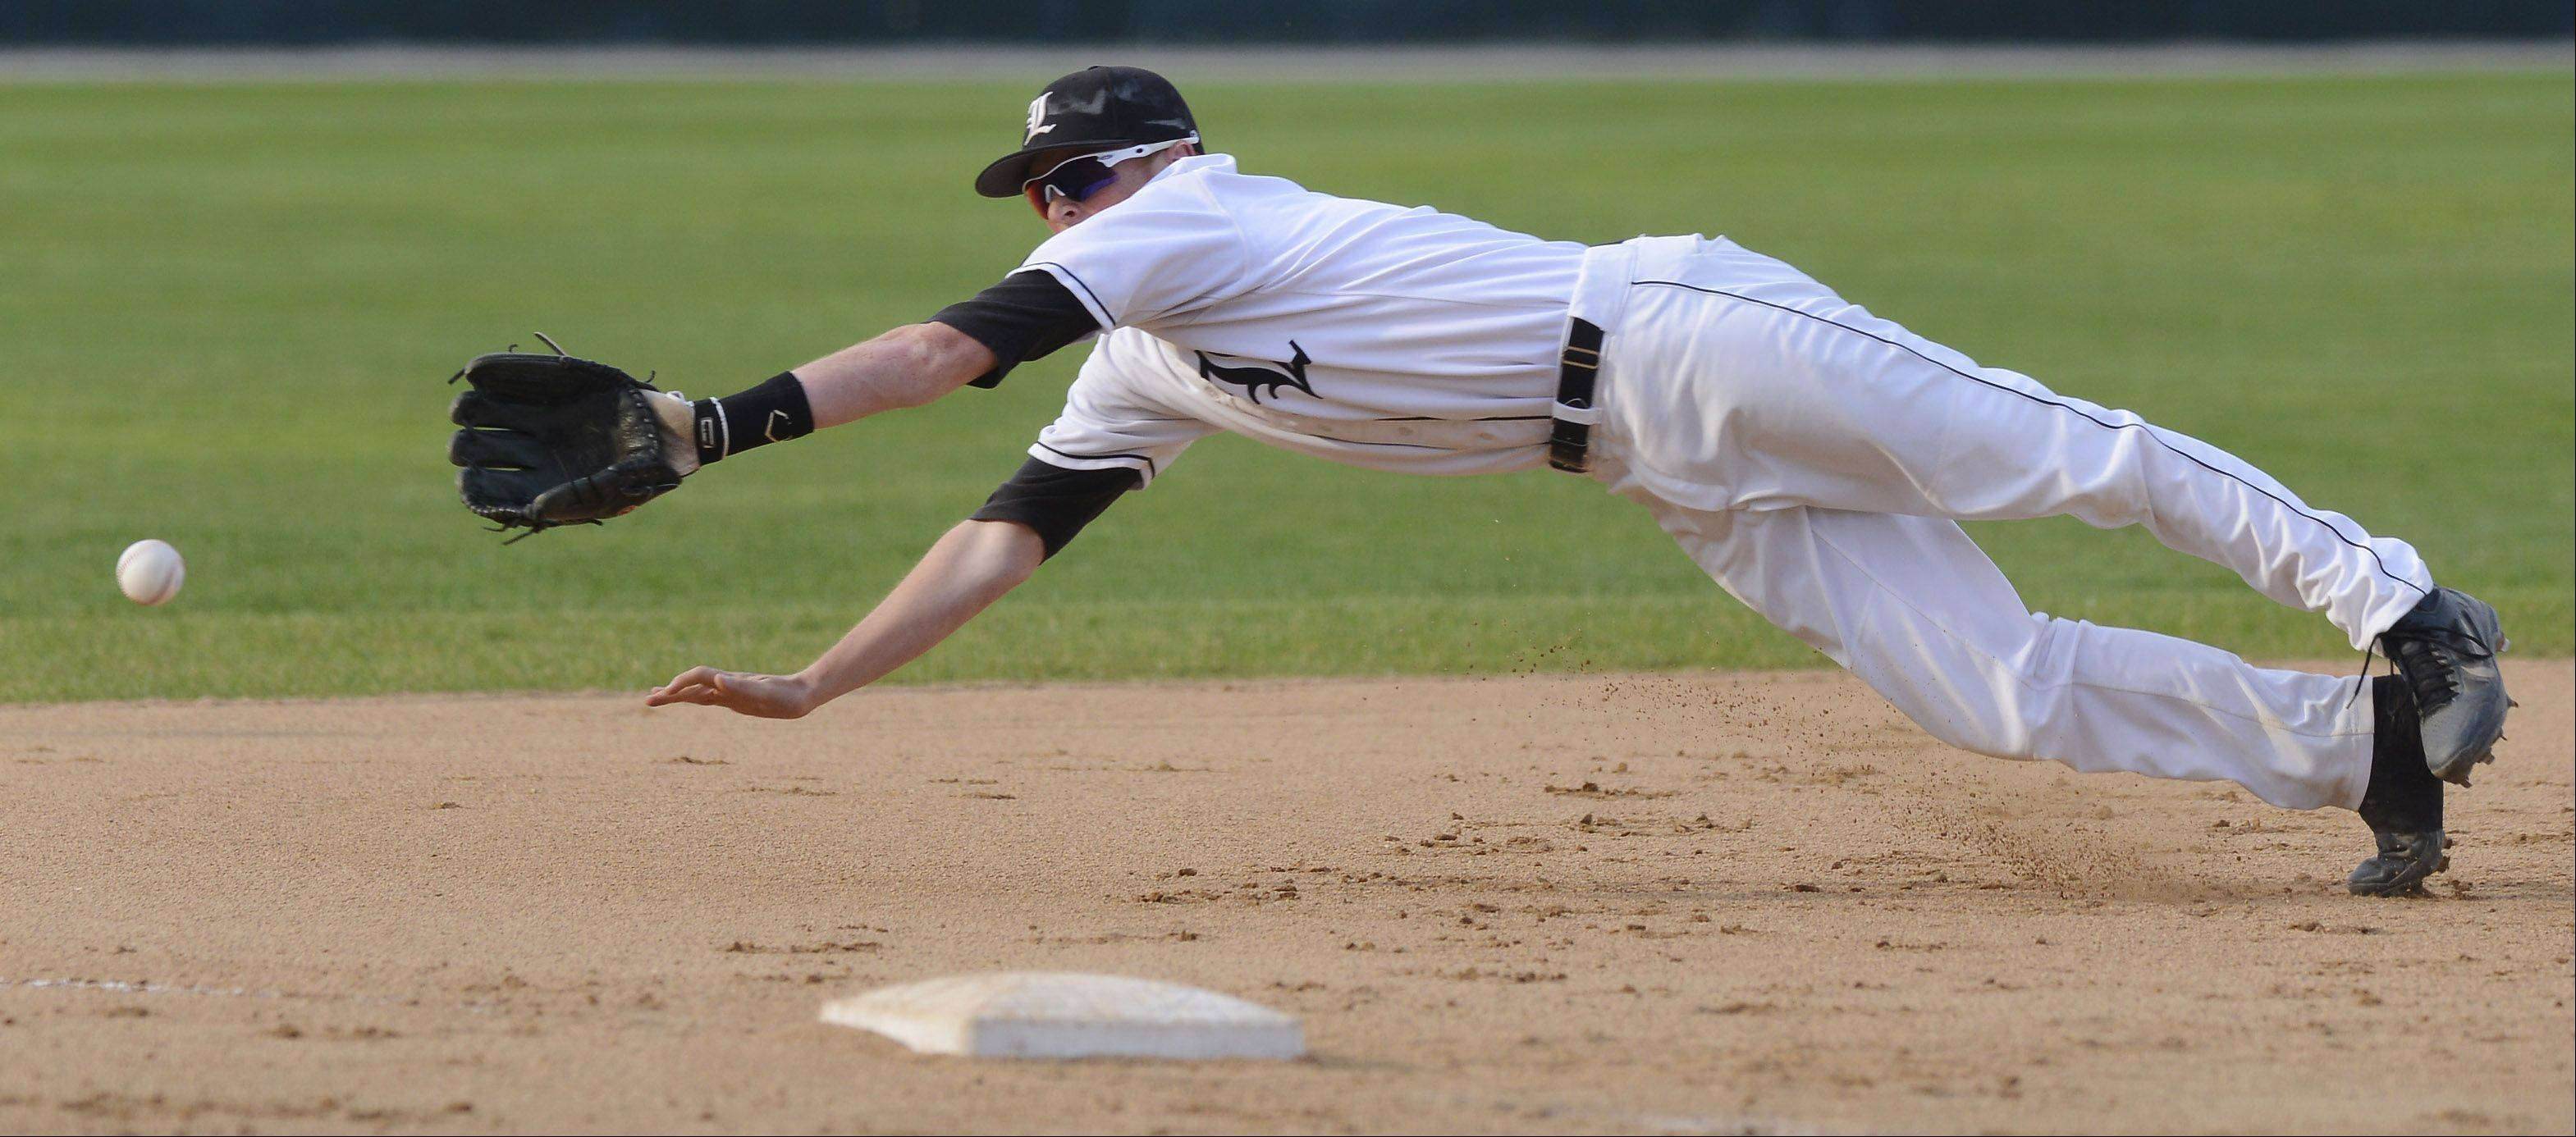 Libertyville third baseman P.J. Neumann dives for a ball that went for a Mt. Carmel double in the fourth inning of the Class 4A state baseball championship game at Silver Cross Field in Joliet Saturday.